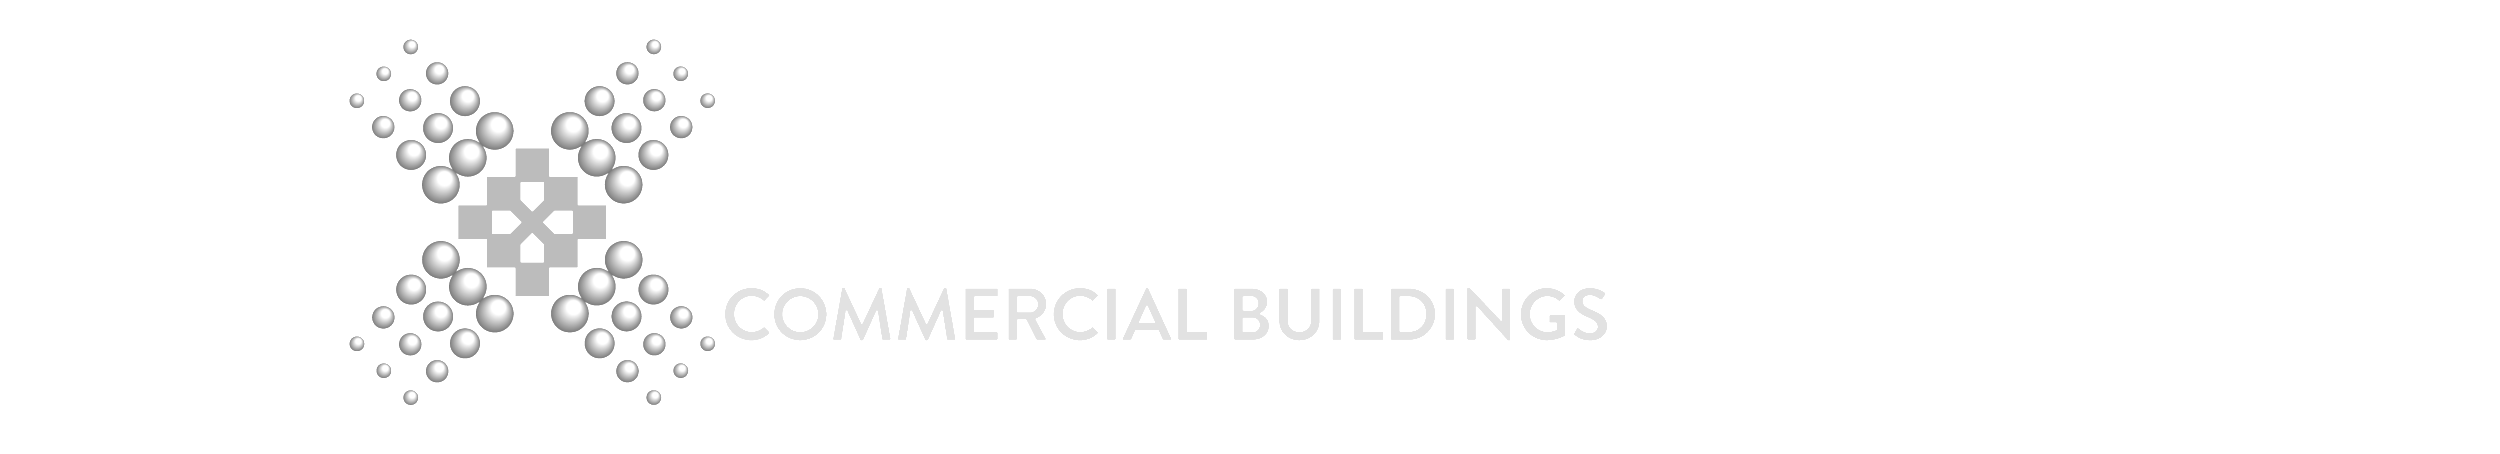 Ex Commercial Building White-01.png